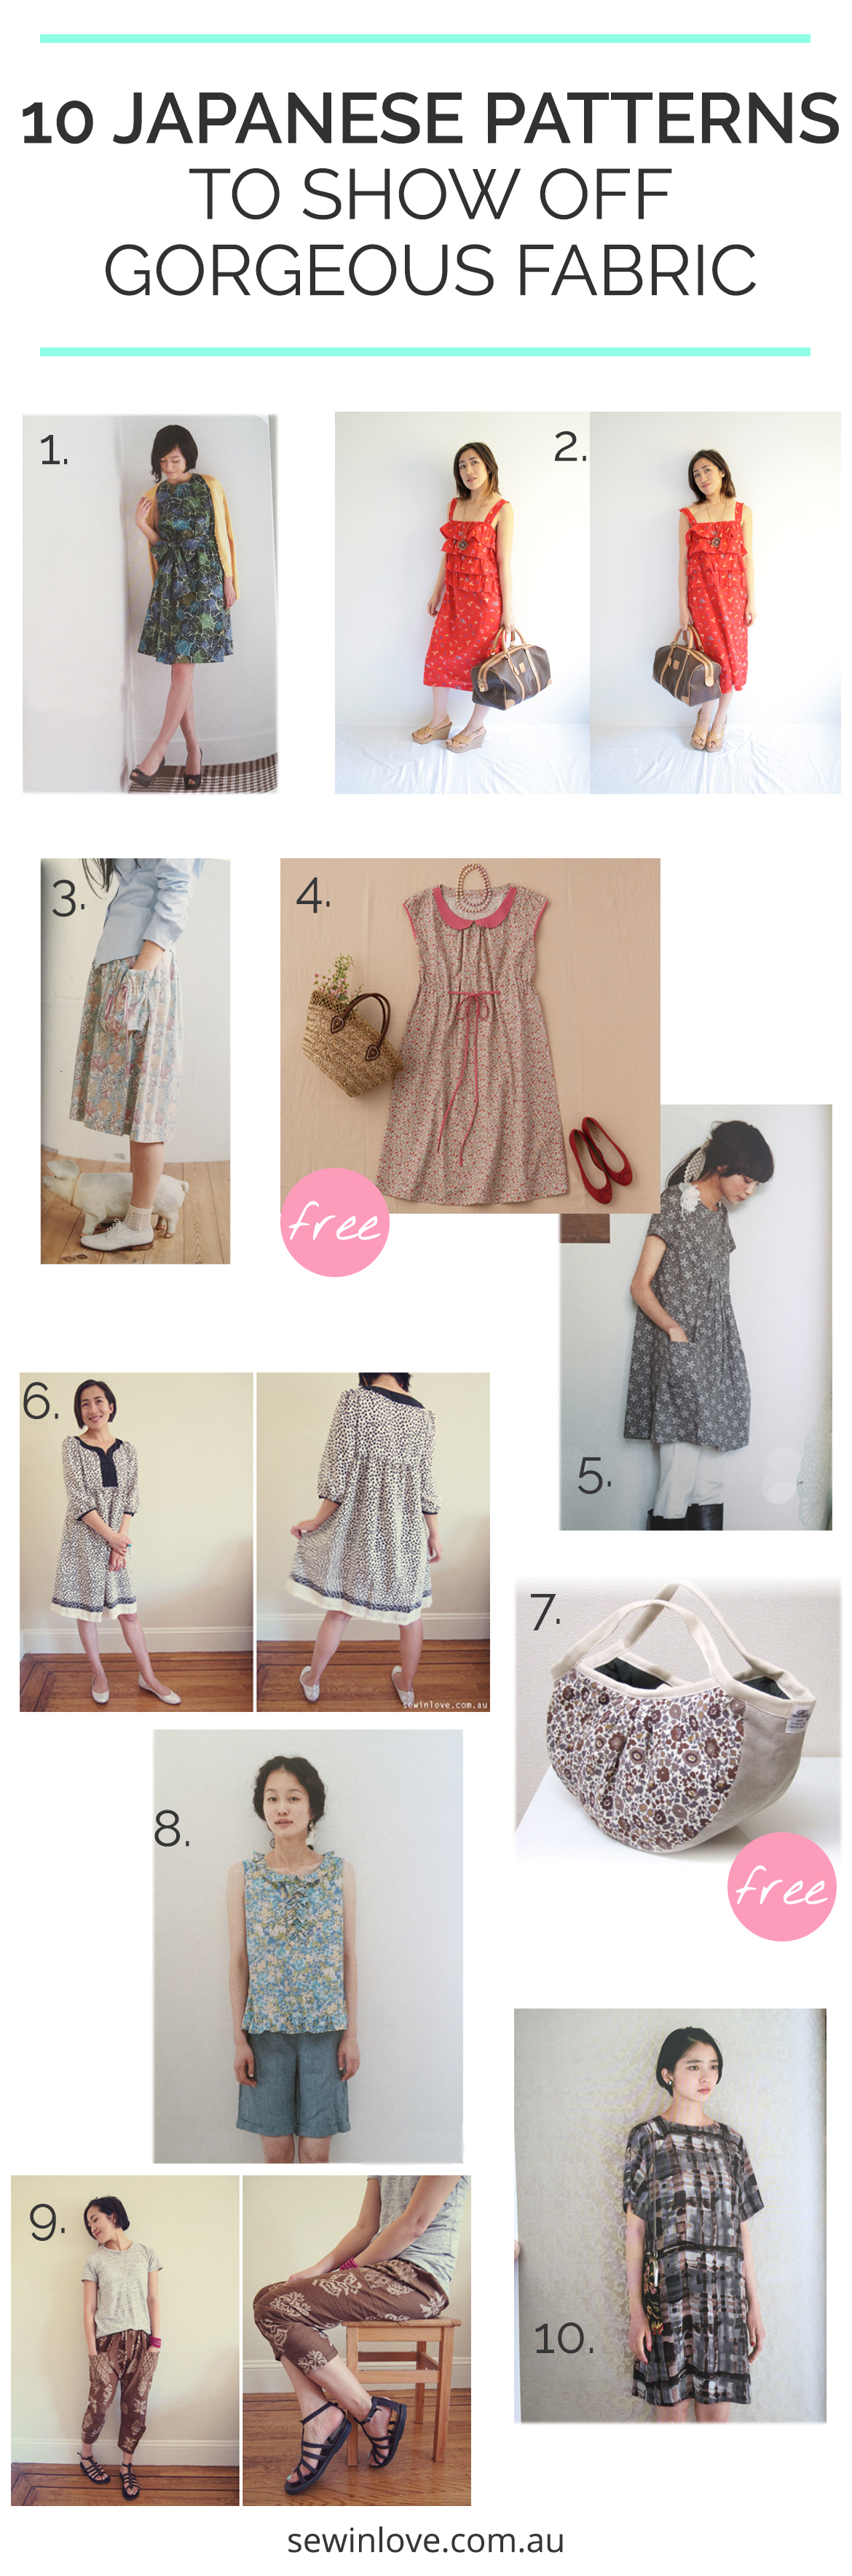 Here's 10 Japanese sewing patterns to finally use that too-pretty-to-cut fabric you've got stashed away! The simple lines of these patterns really show off your gorgeous fabric.